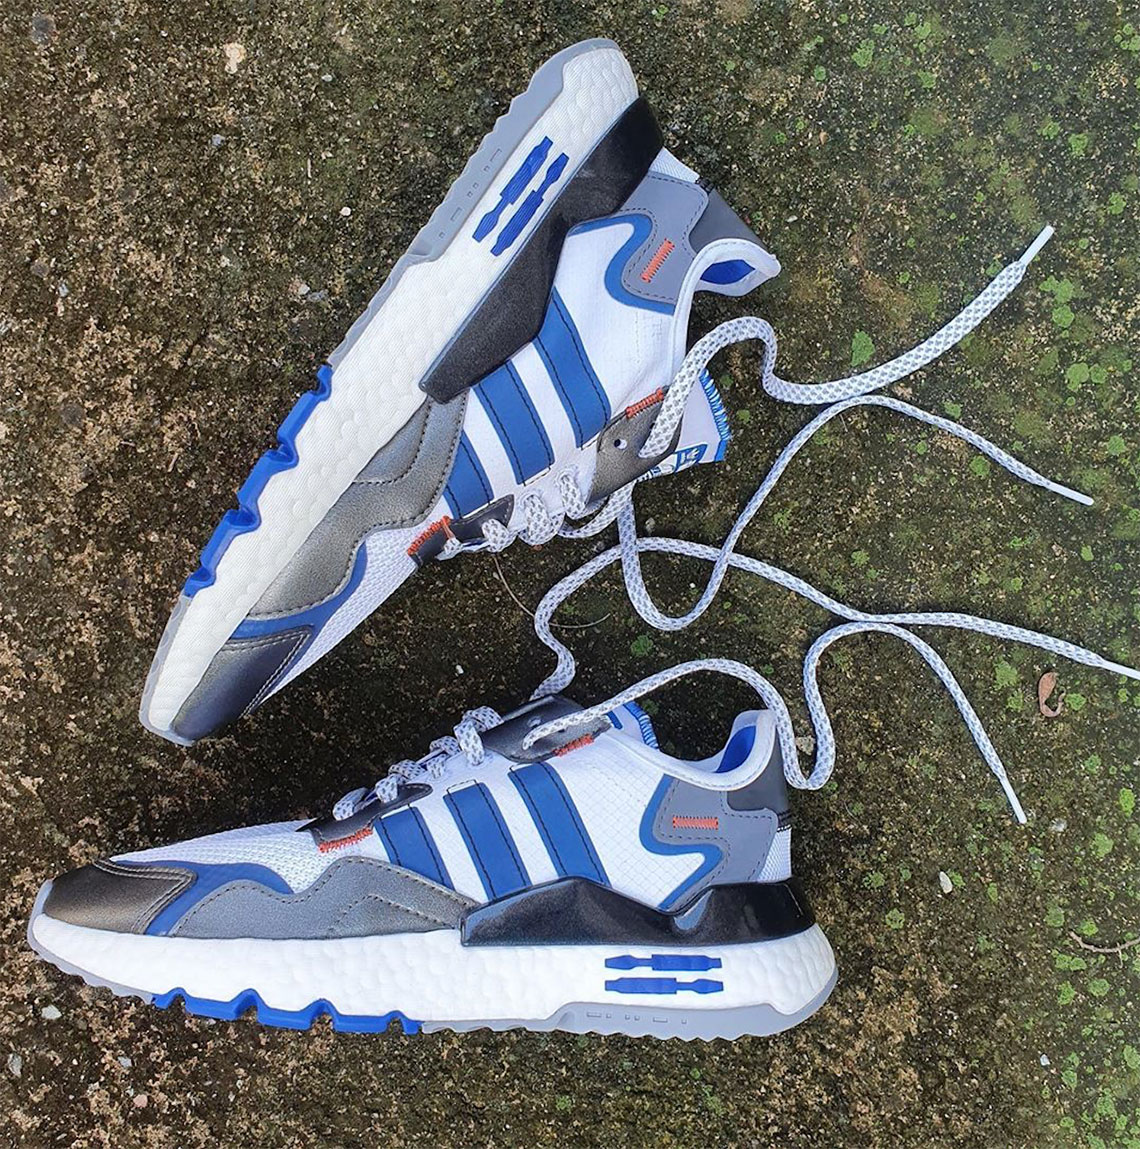 Star Wars adidas Nite Jogger R2D2 Release Info |